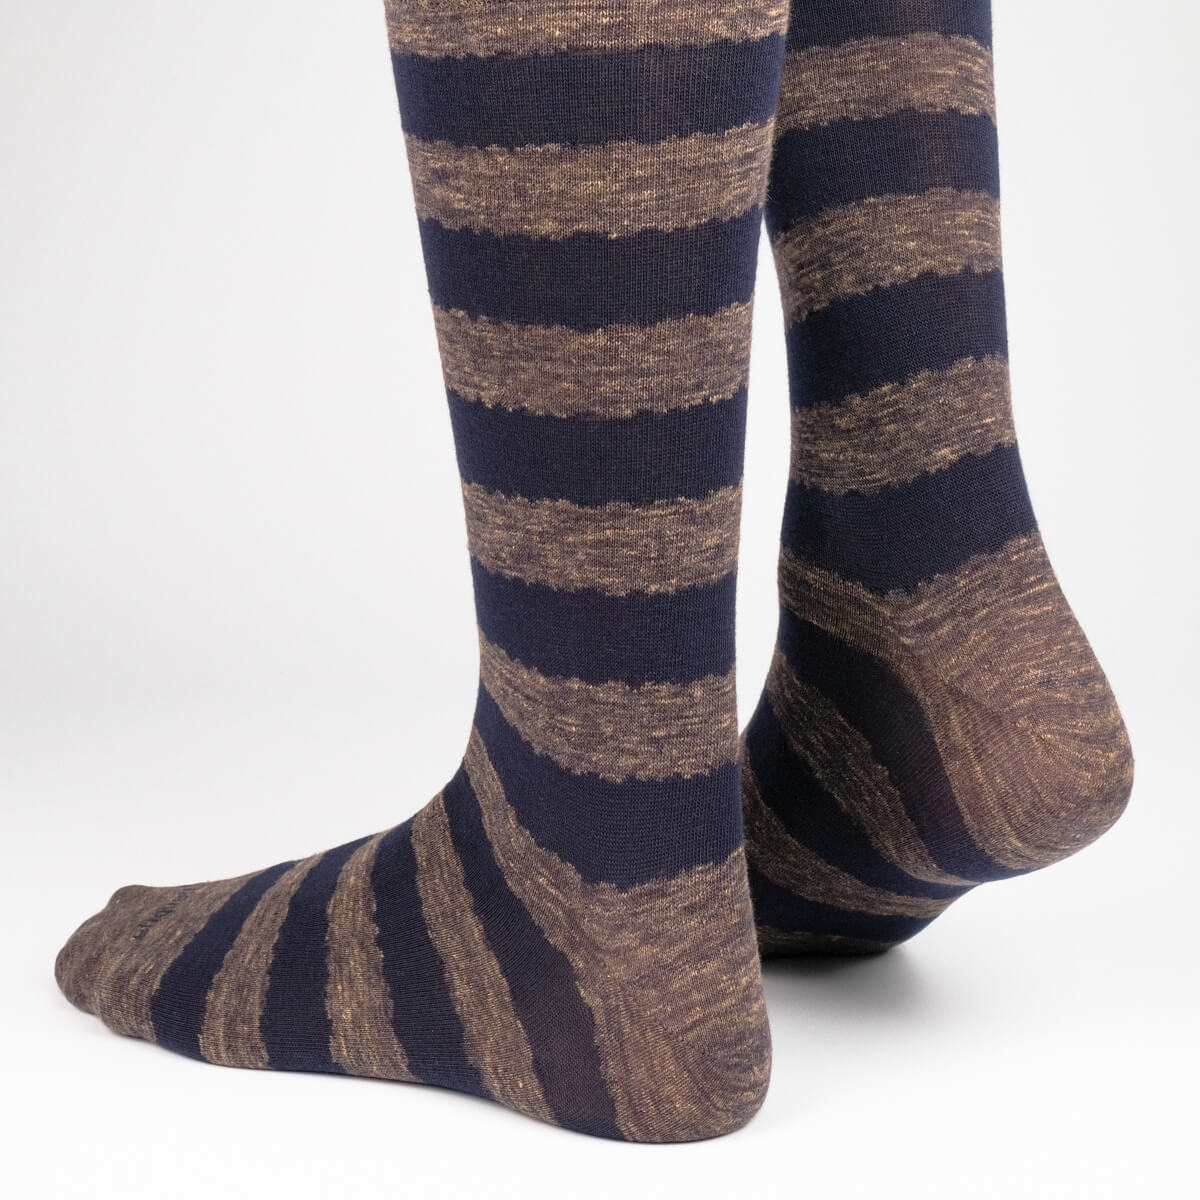 Mens Socks - Earthy Aroma Gift Box - Grey⎪Etiquette Clothiers